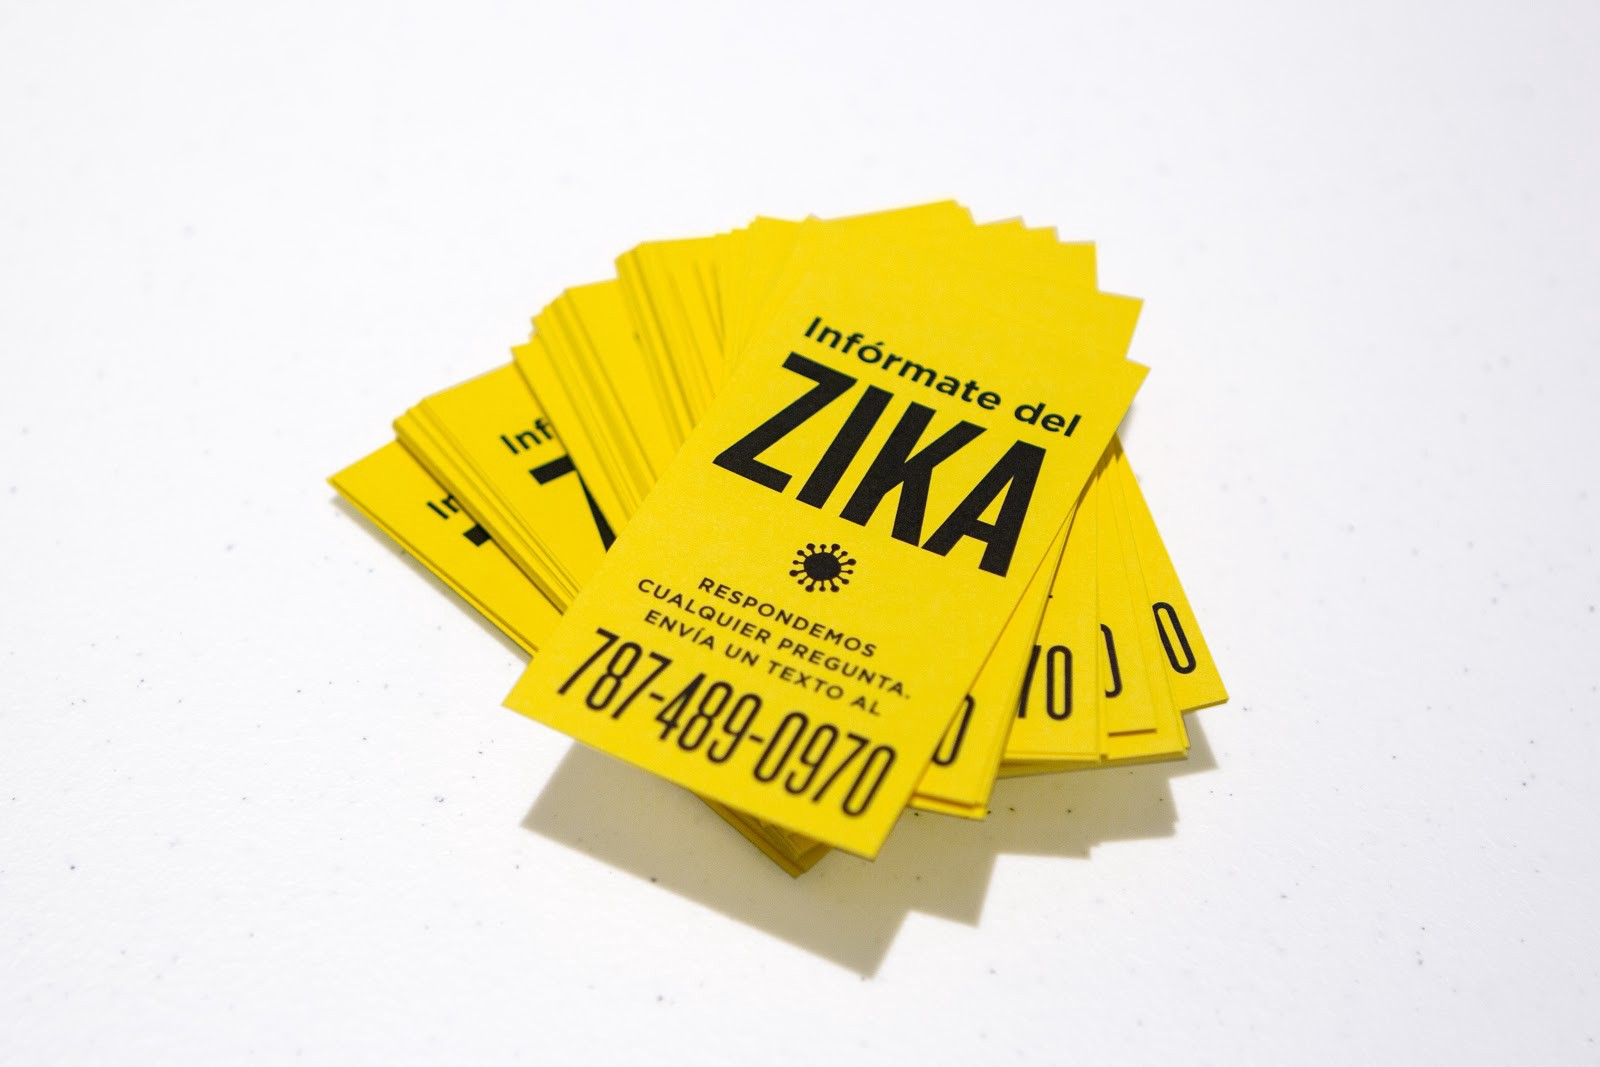 The cards that were distributed to create awareness around the Zikabot initiative.